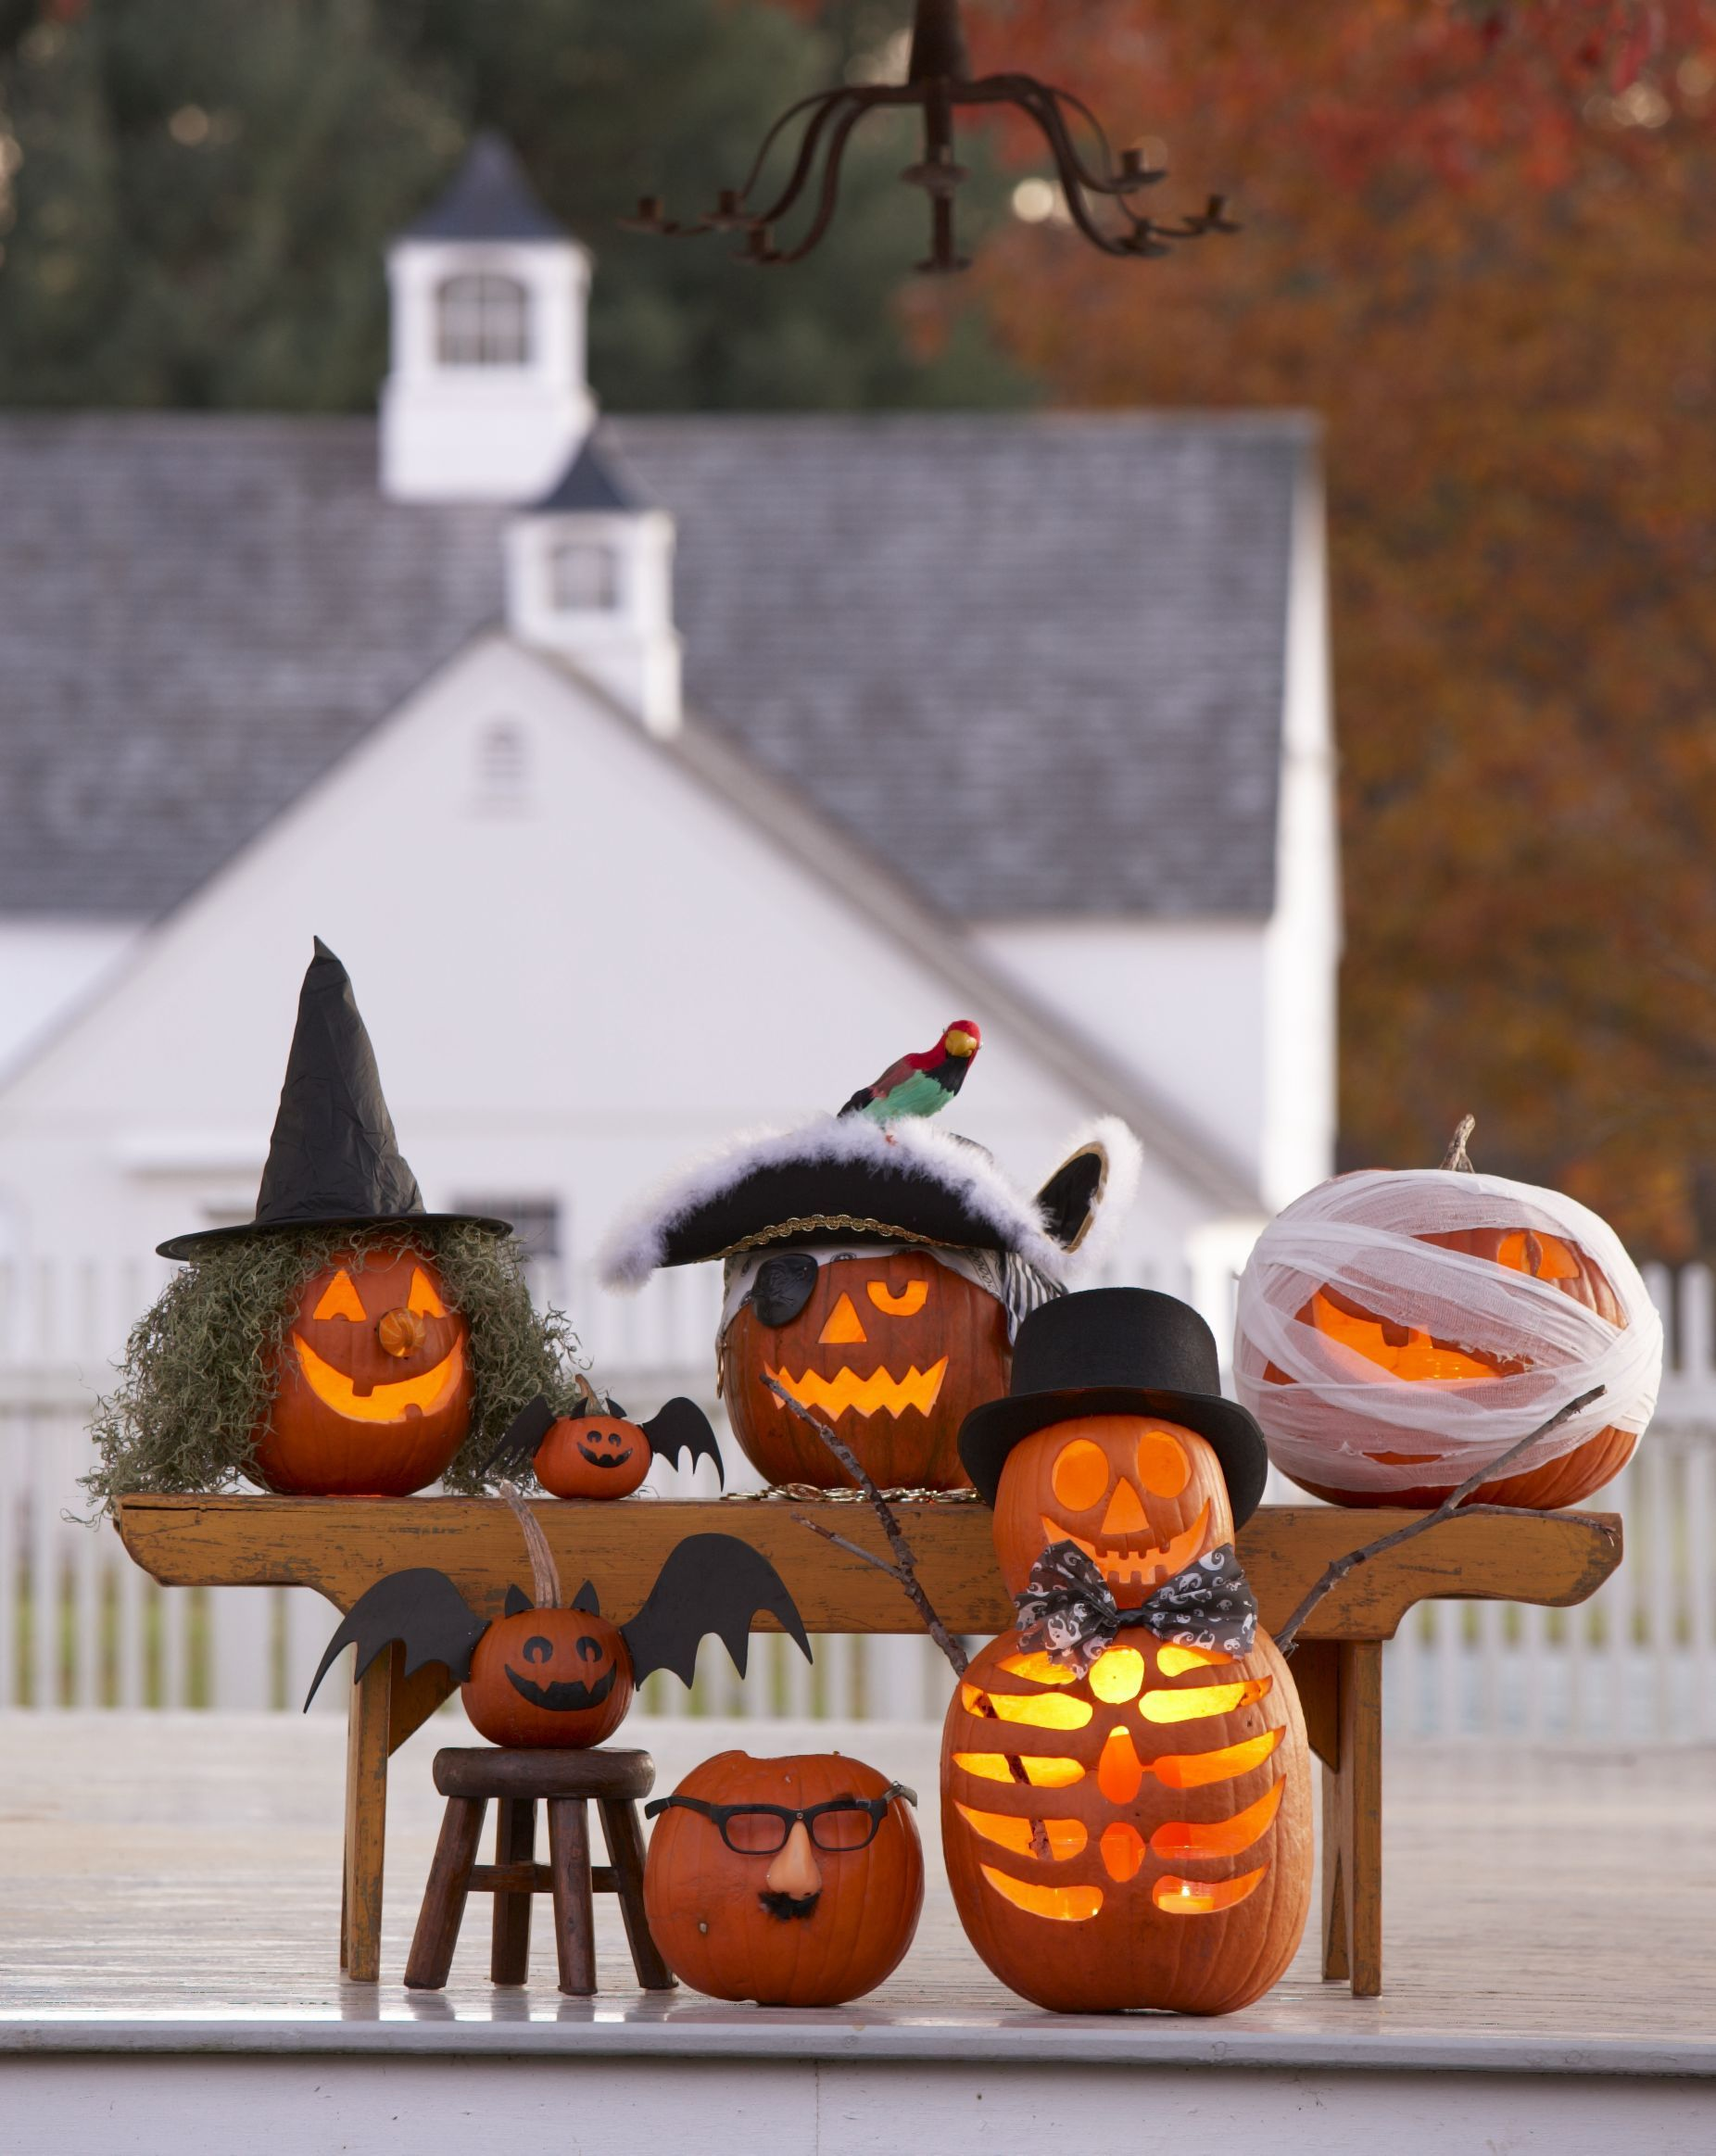 pumpkin pirates Halloween Pinterest Holidays, Halloween ideas - Decorating For Halloween